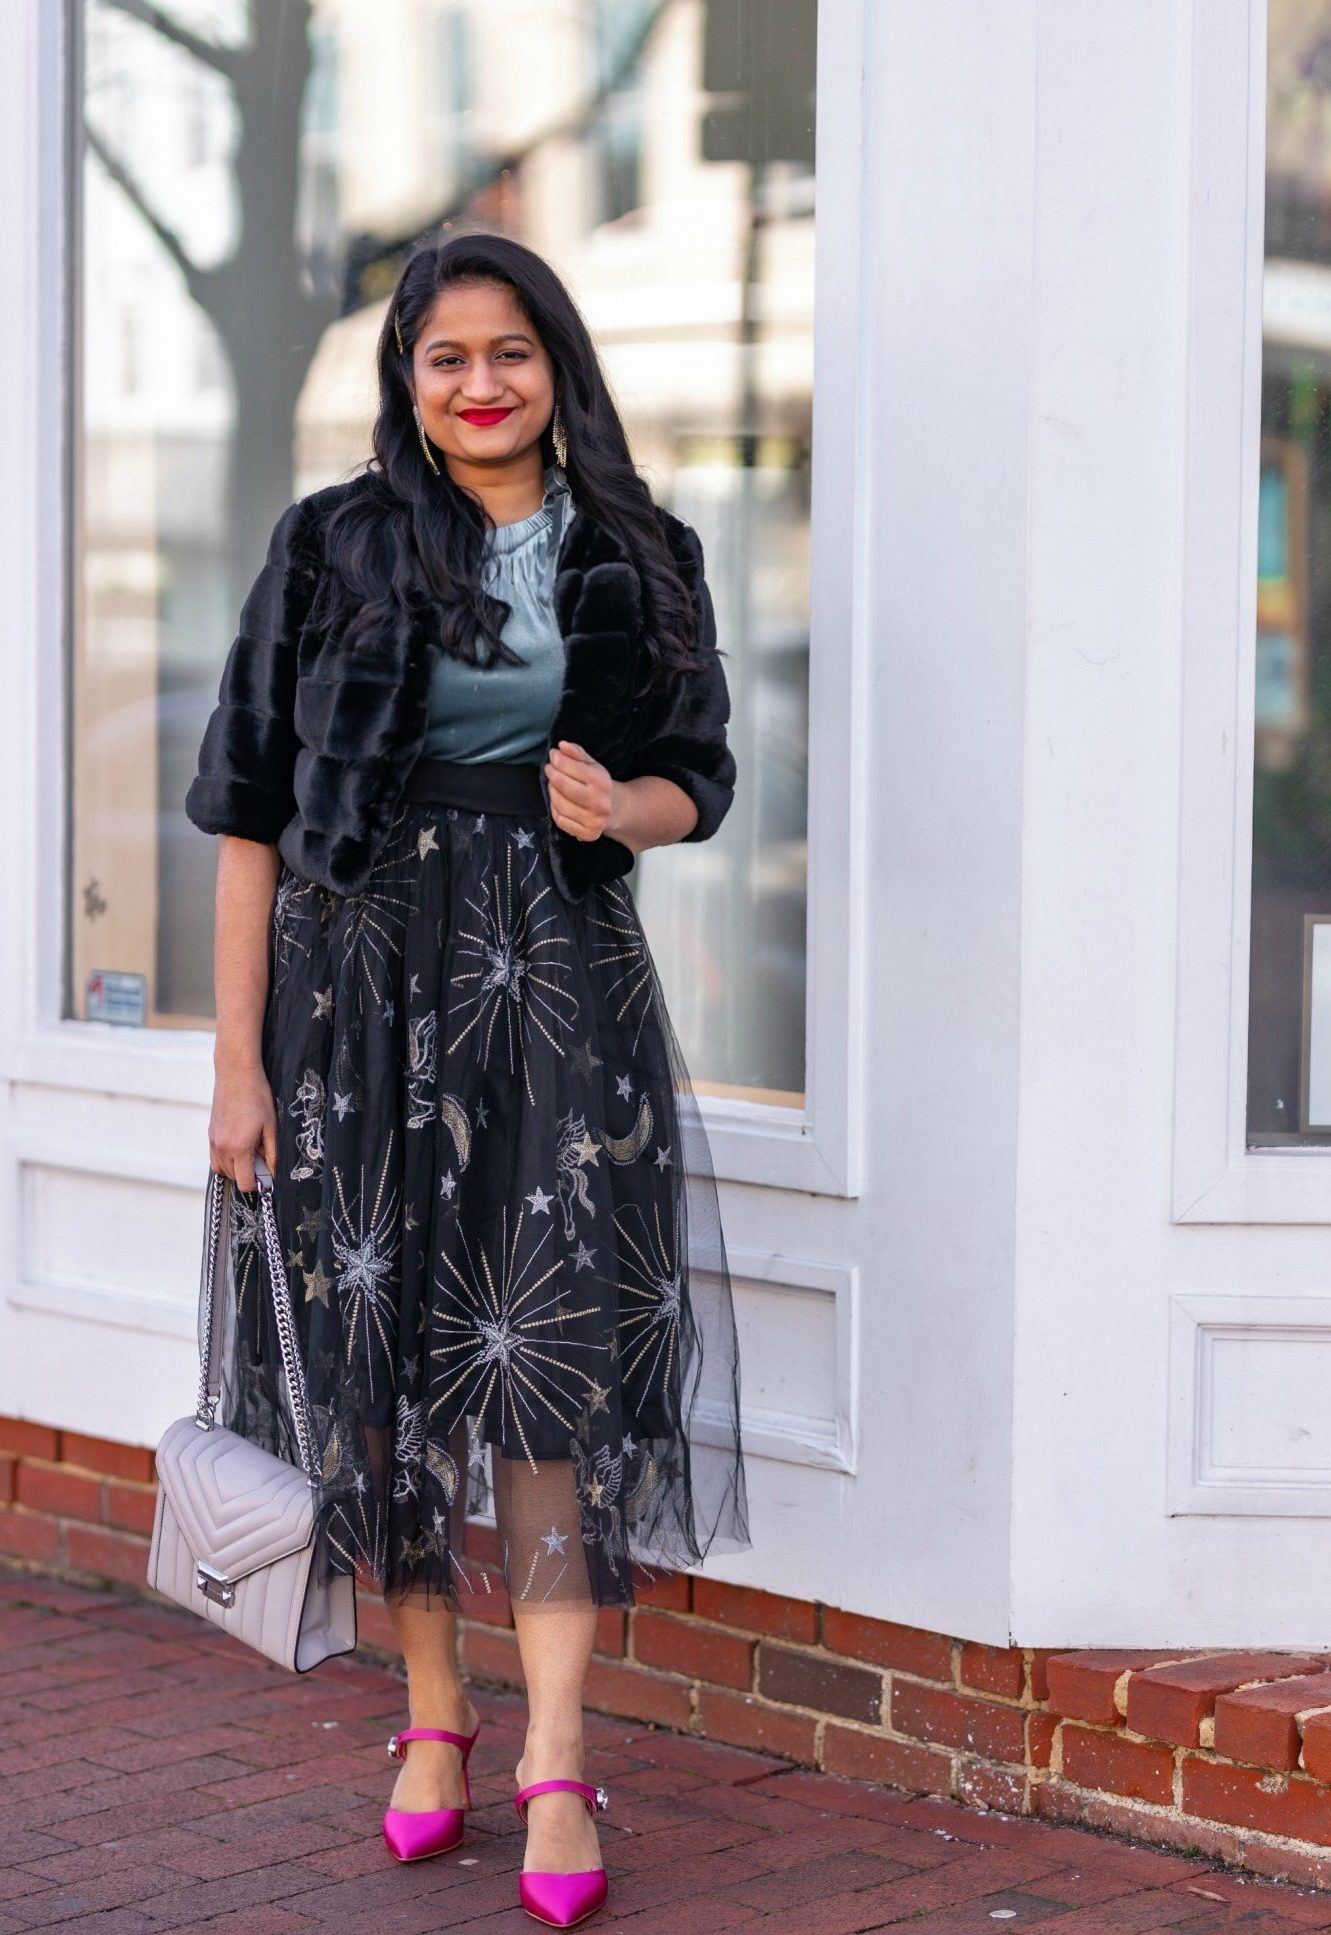 Affordable New Years Eve Outfits to Ring In the New Year featured by top US modest blog, Dreaming Loud: Alcea Rosea Black Tulle tutu Skirt, Velvet Camisole, Banana Republic Satin Pink Heels, WHBM Faux Bolero Jacket1